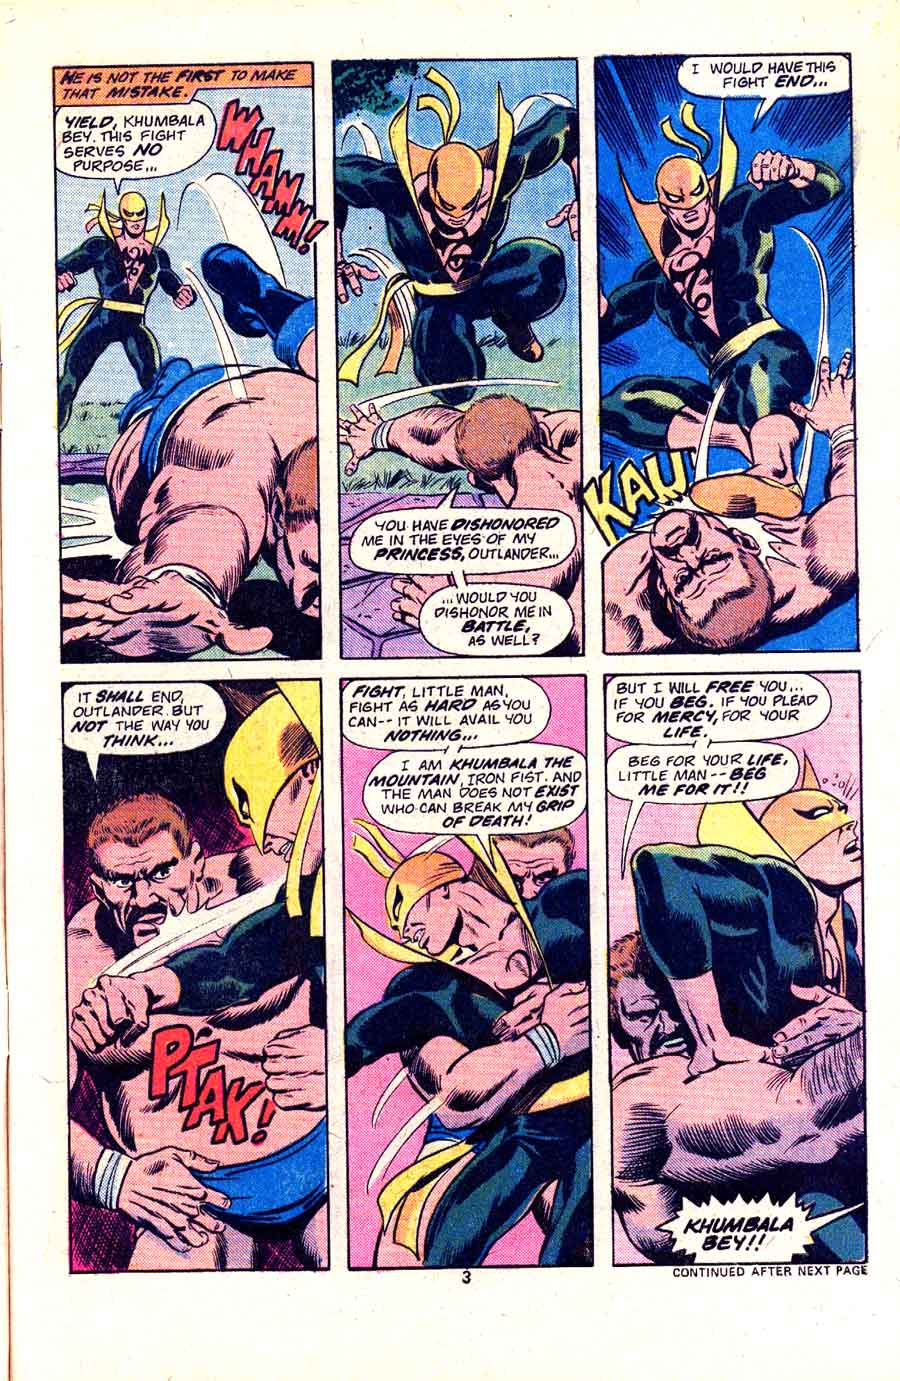 Marvel Premiere #25 marvel 1970s bronze age Iron Fist comic book art page by John Byrne